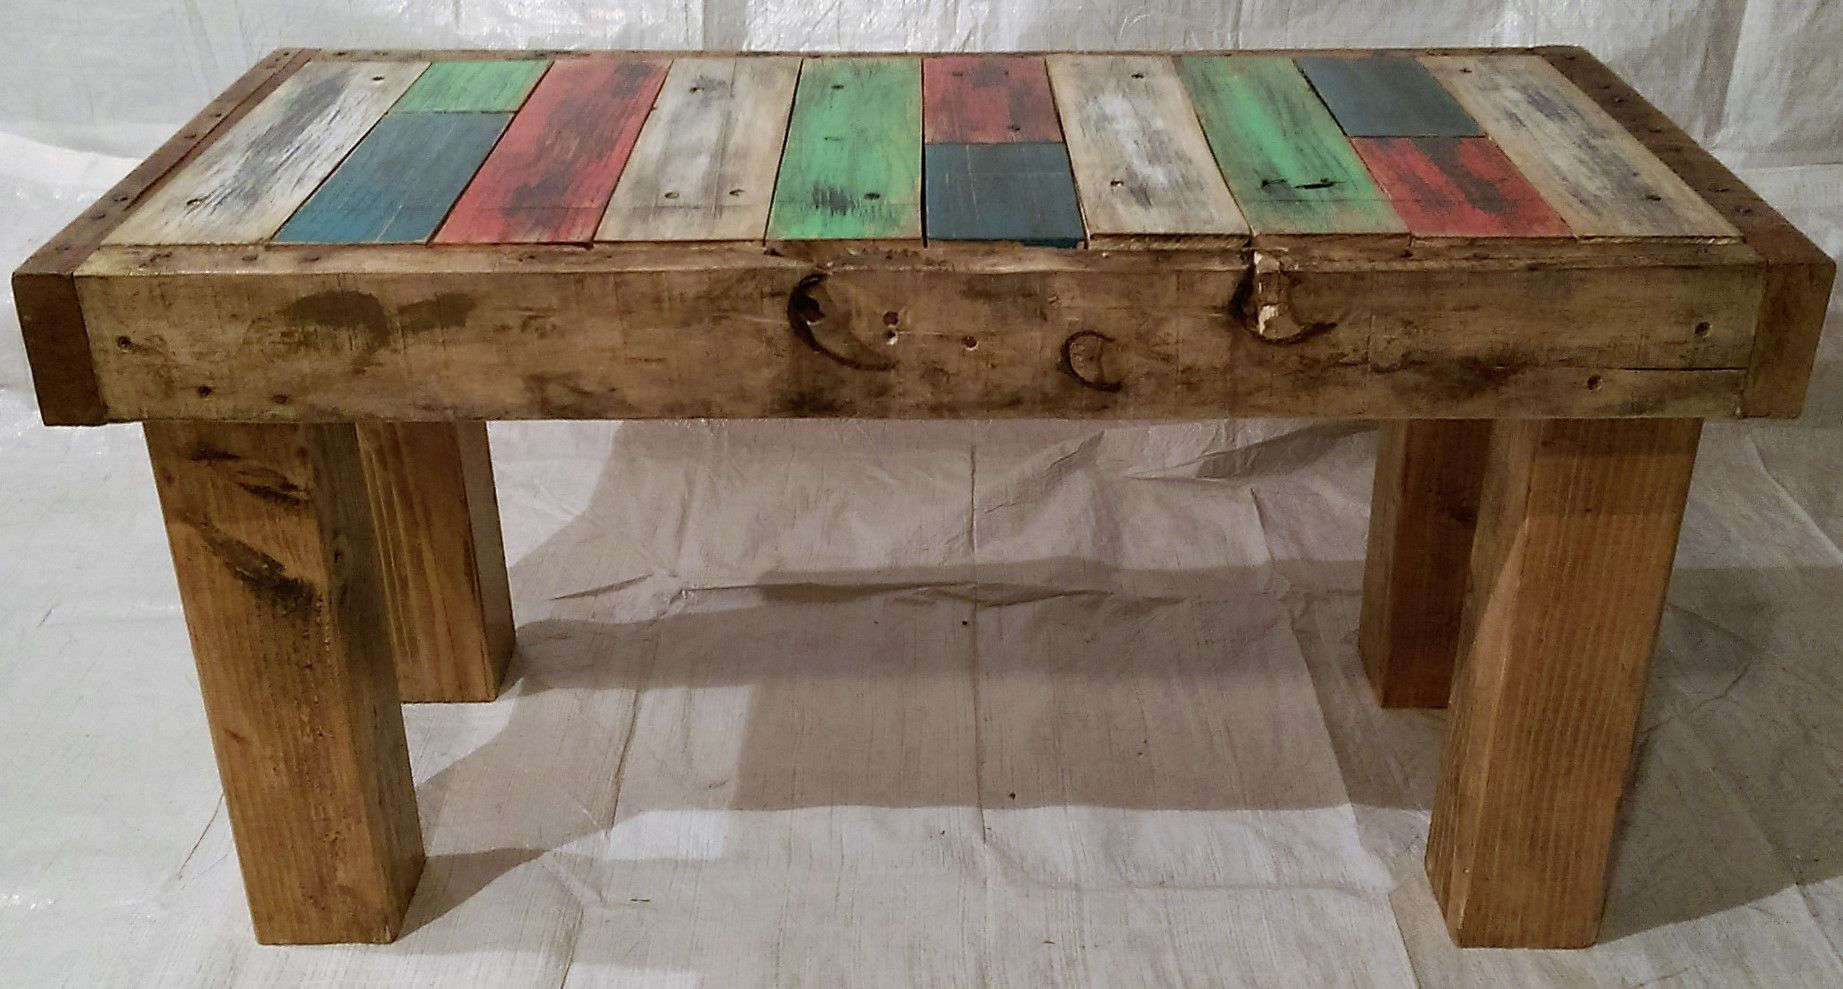 Rustic Wood Bench Coffee Table Reclaimed Pallet